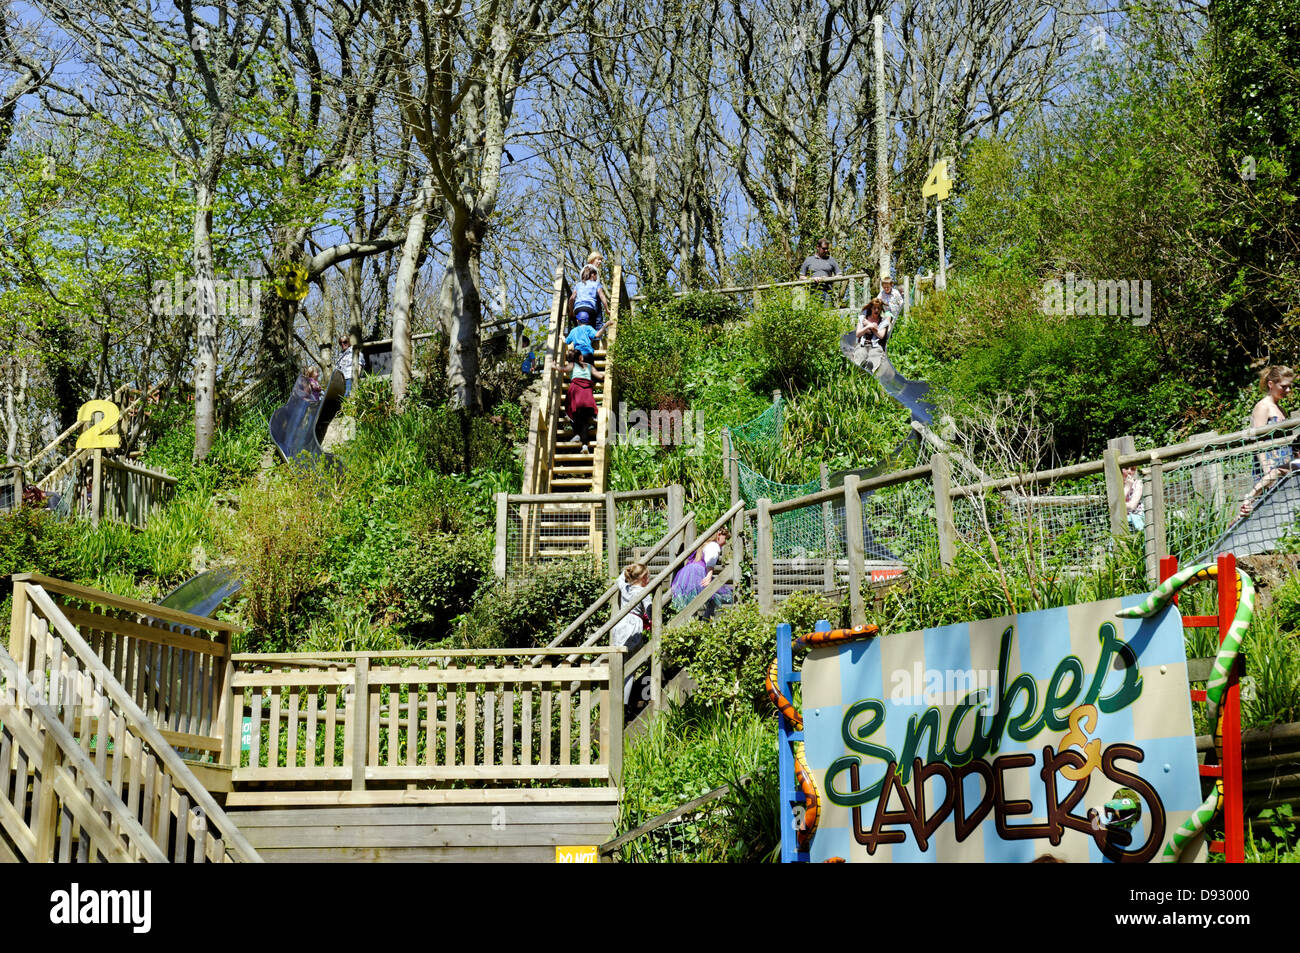 Image result for Blackgang Chine Amusement Park, Ventnor, Isle of Wight